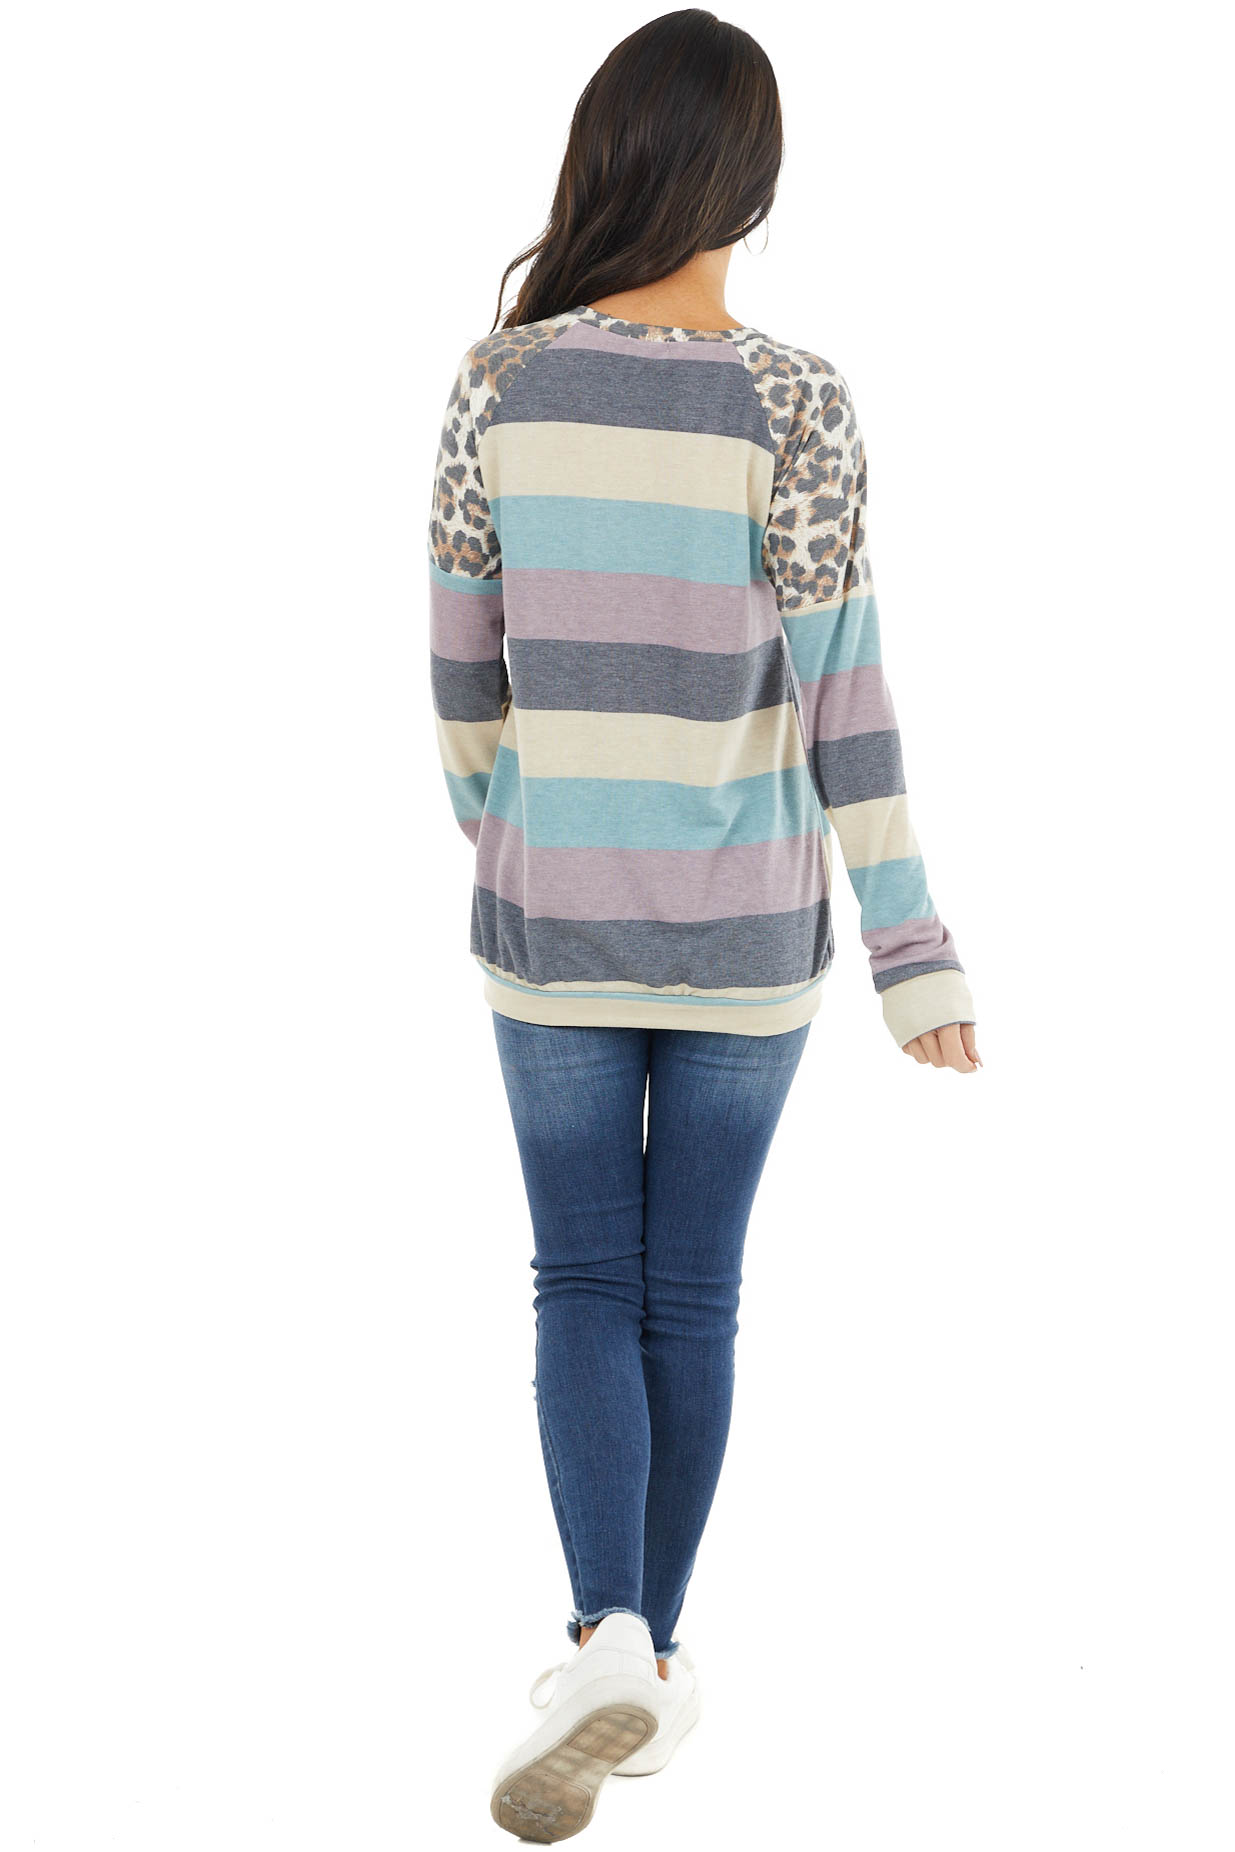 Lavender and Teal Striped Long Sleeve Top with Leopard Print